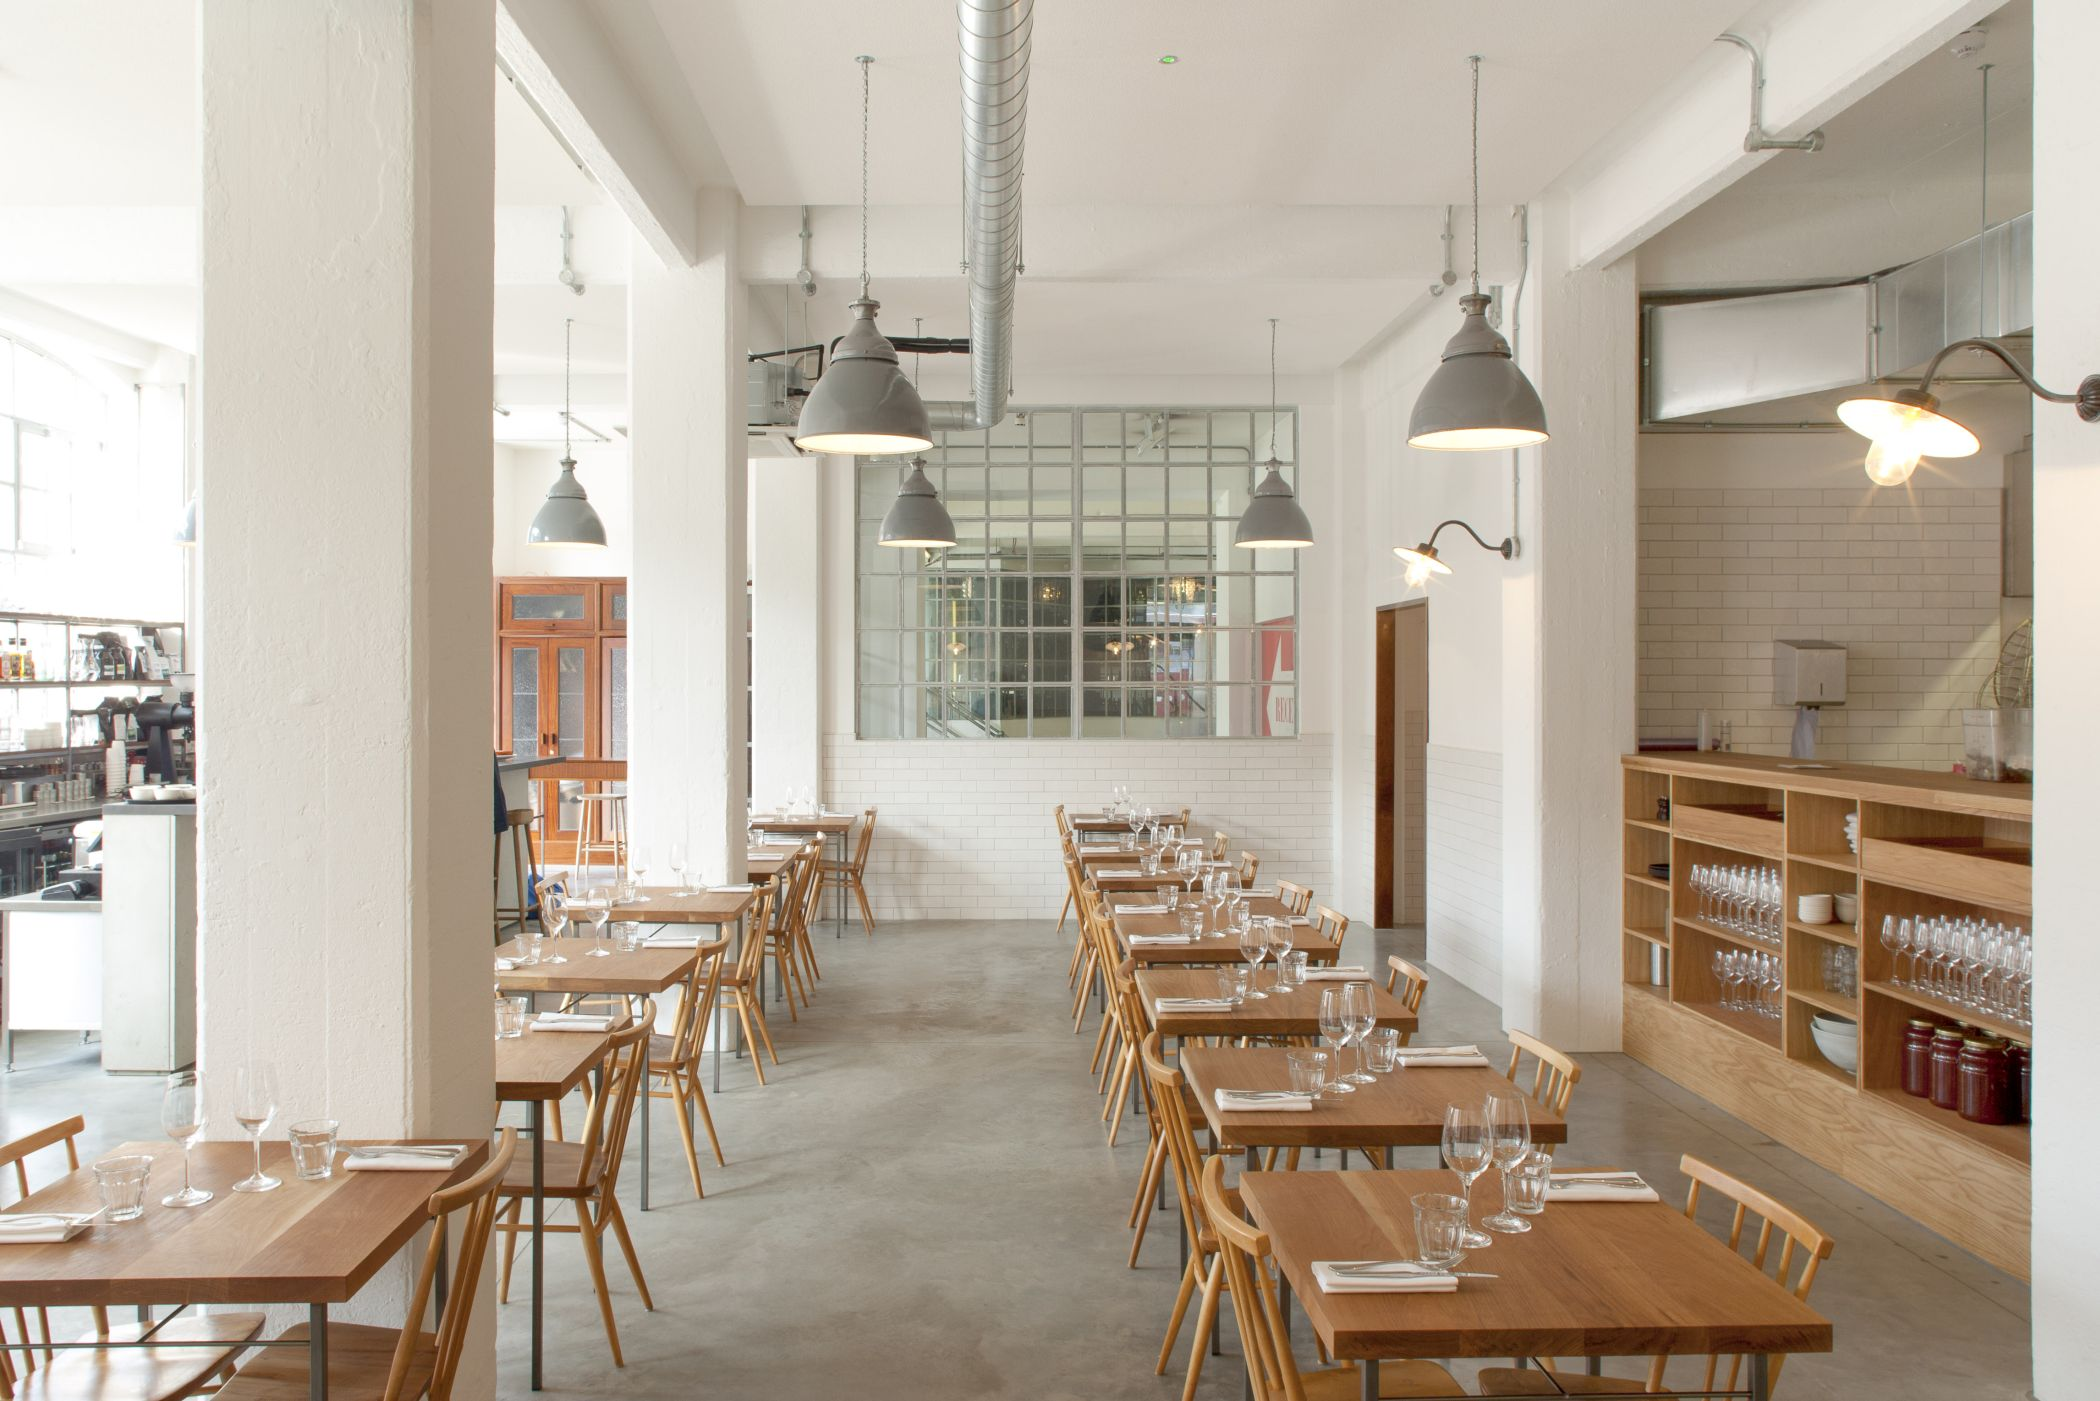 STO PROVES TO BE THE PERFECT INGREDIENT  FOR MAJOR RESTAURANT PROJECT